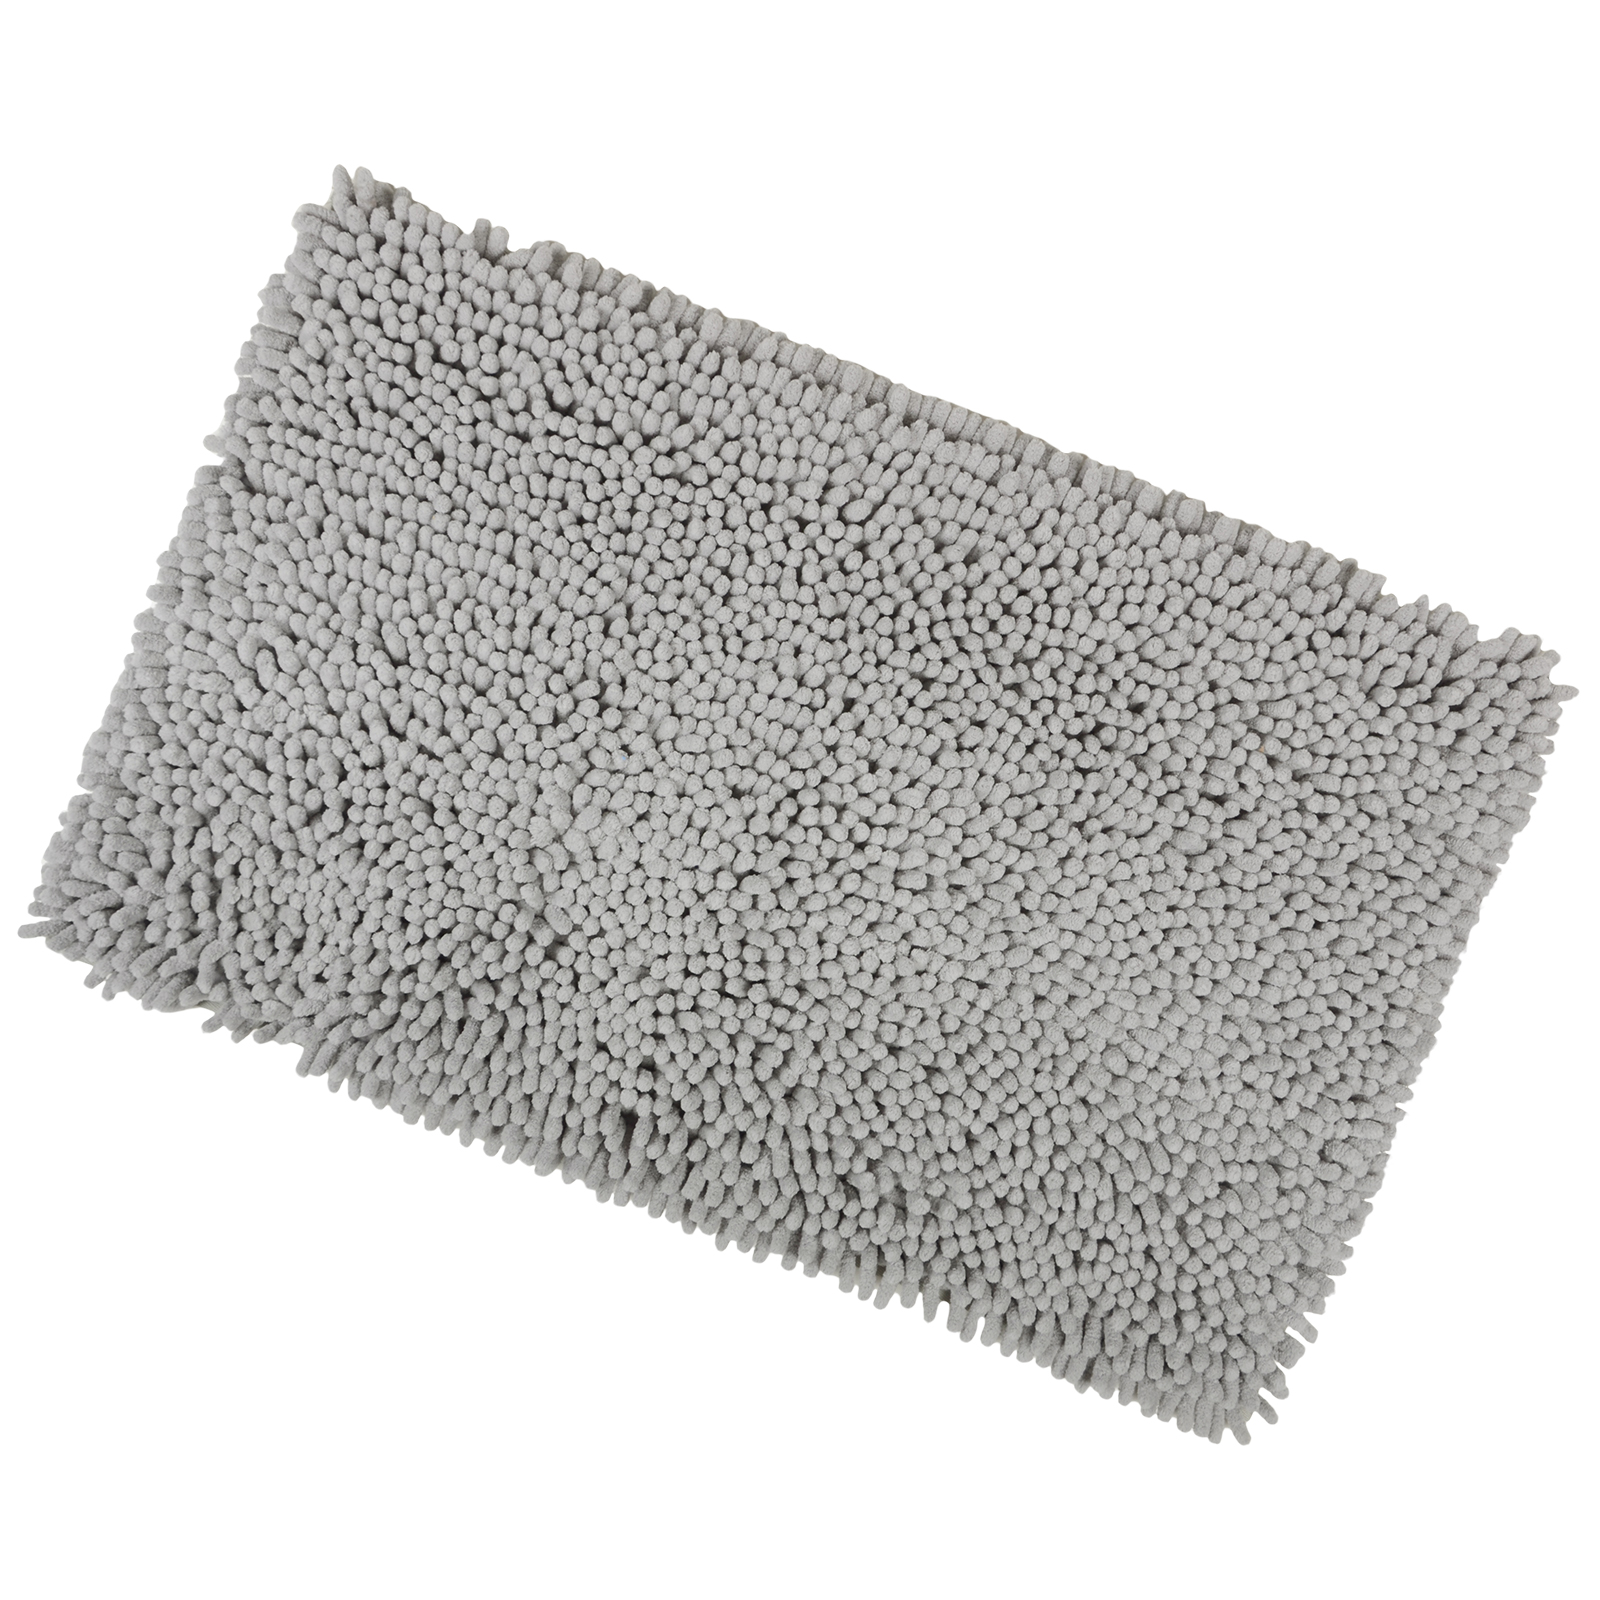 Luxury Microfibre Shaggy Bath Mat With Anti Slip